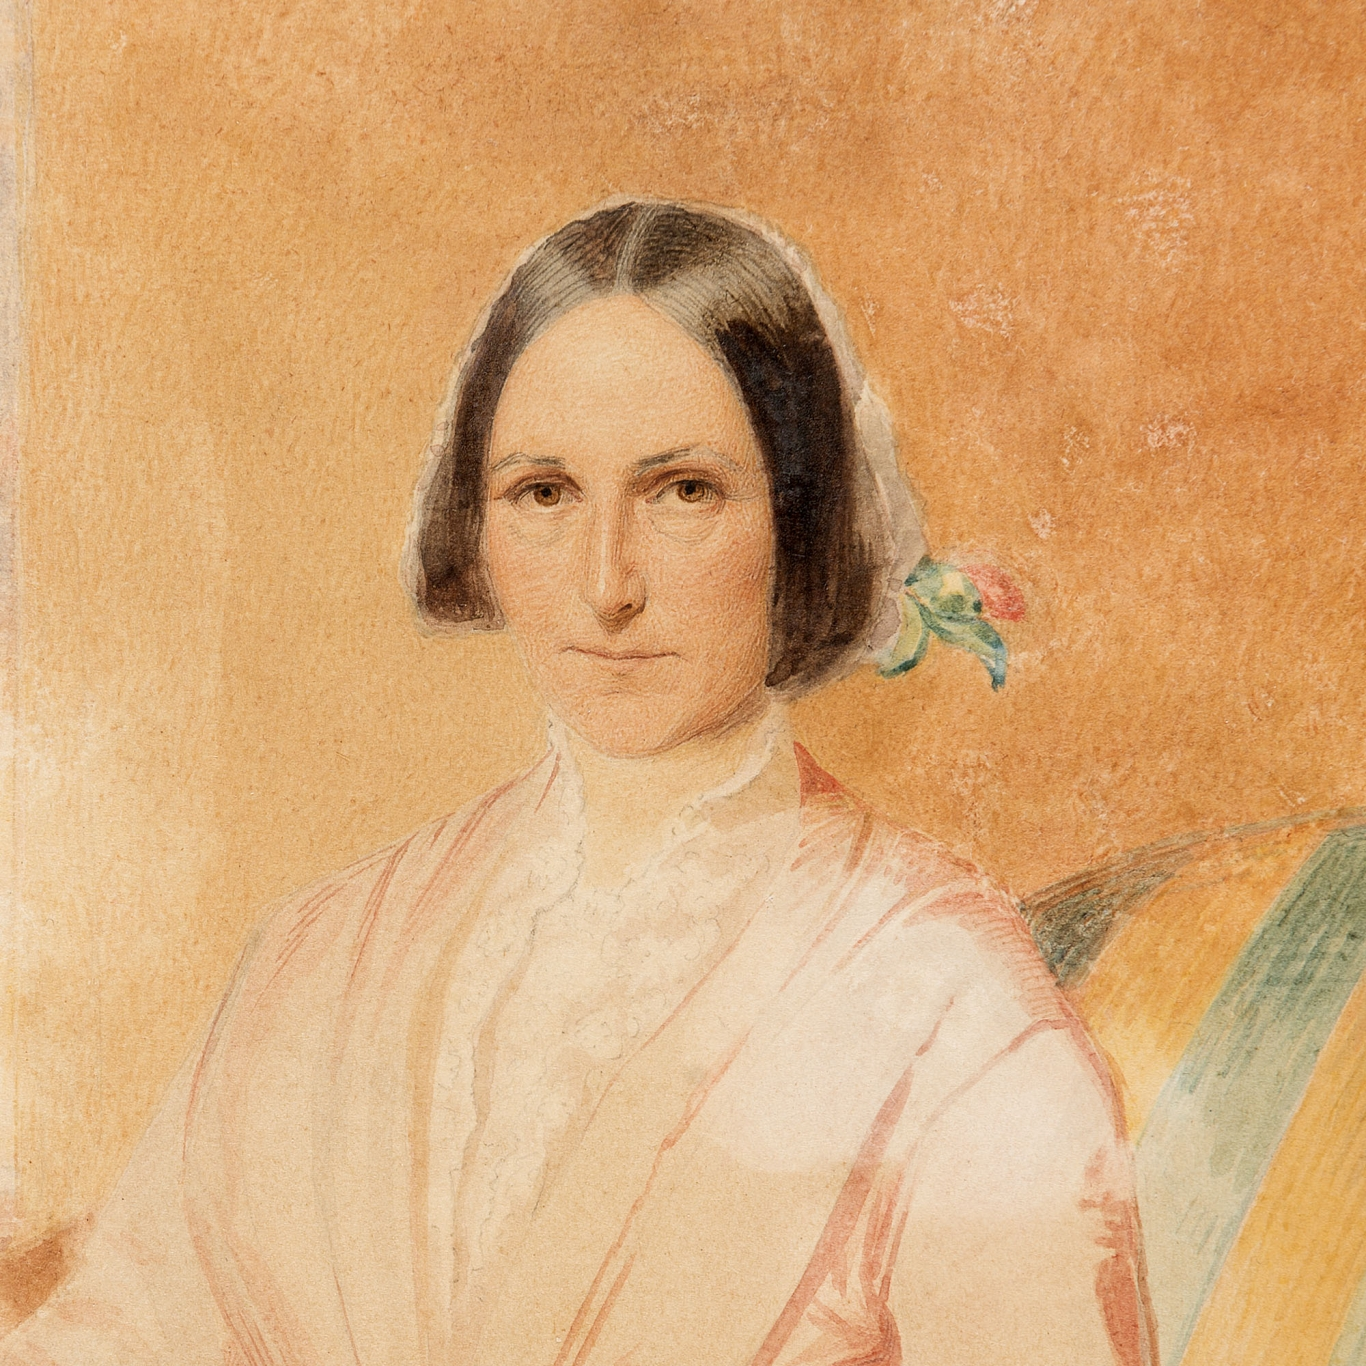 Light-coloured portrait of young woman with dark hair wearing high collared dress.